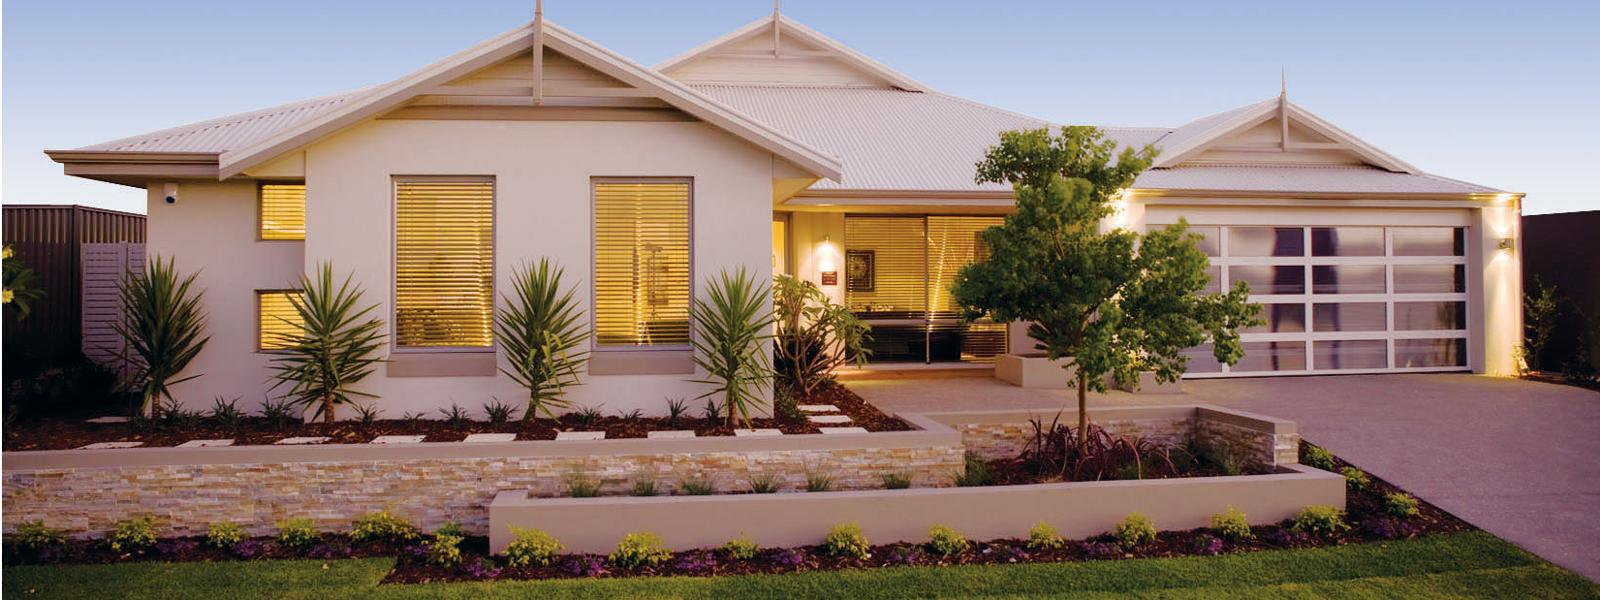 Landscapes WA specialises in construction of hard and soft landscapes.